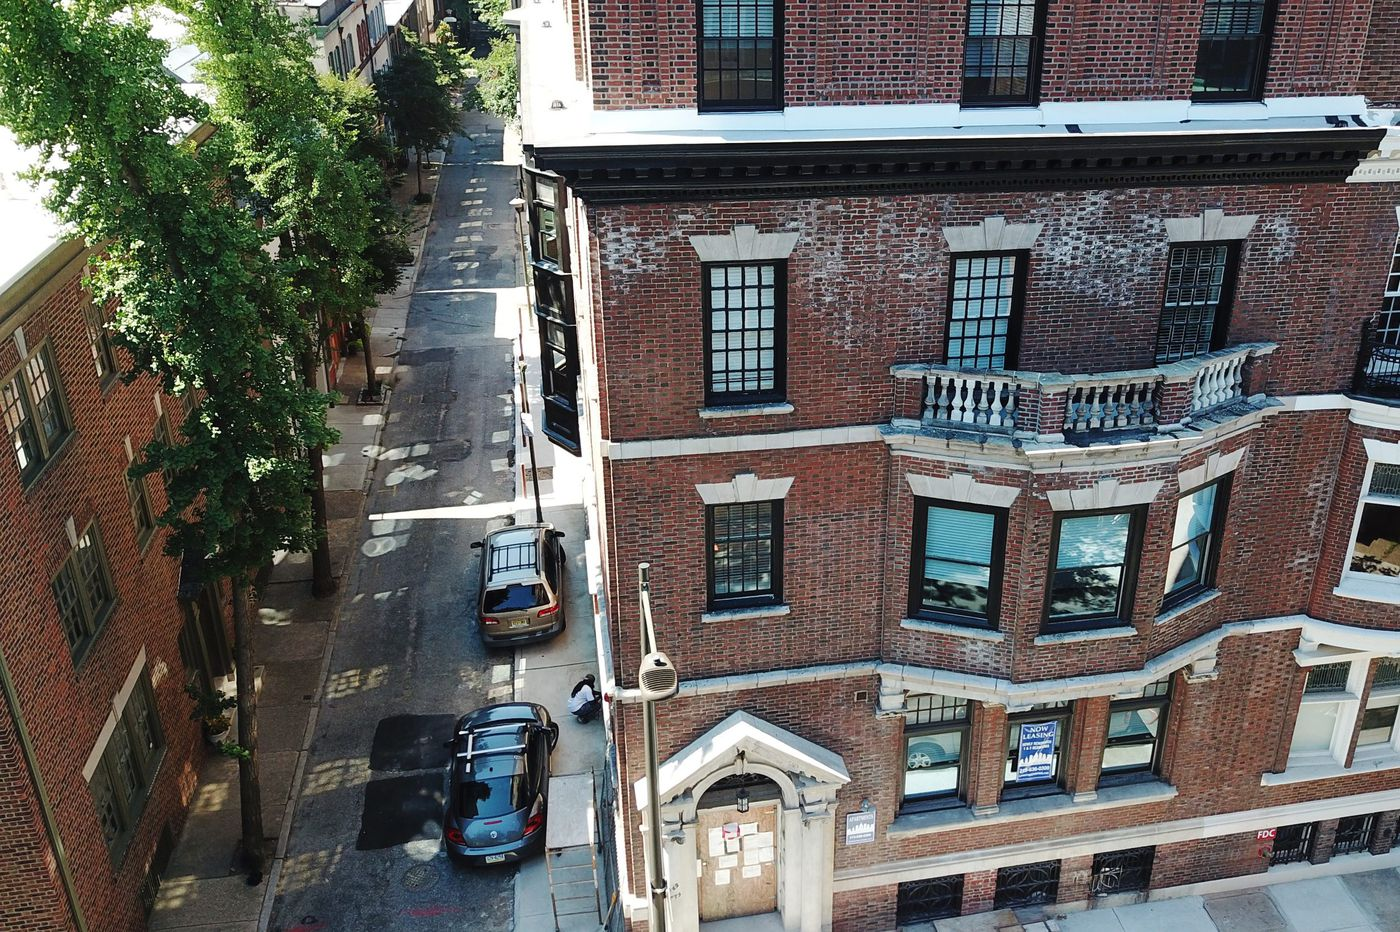 A tale of two historic Philadelphia buildings: One rises from the ashes. The other falls to the wrecking ball | Inga Saffron